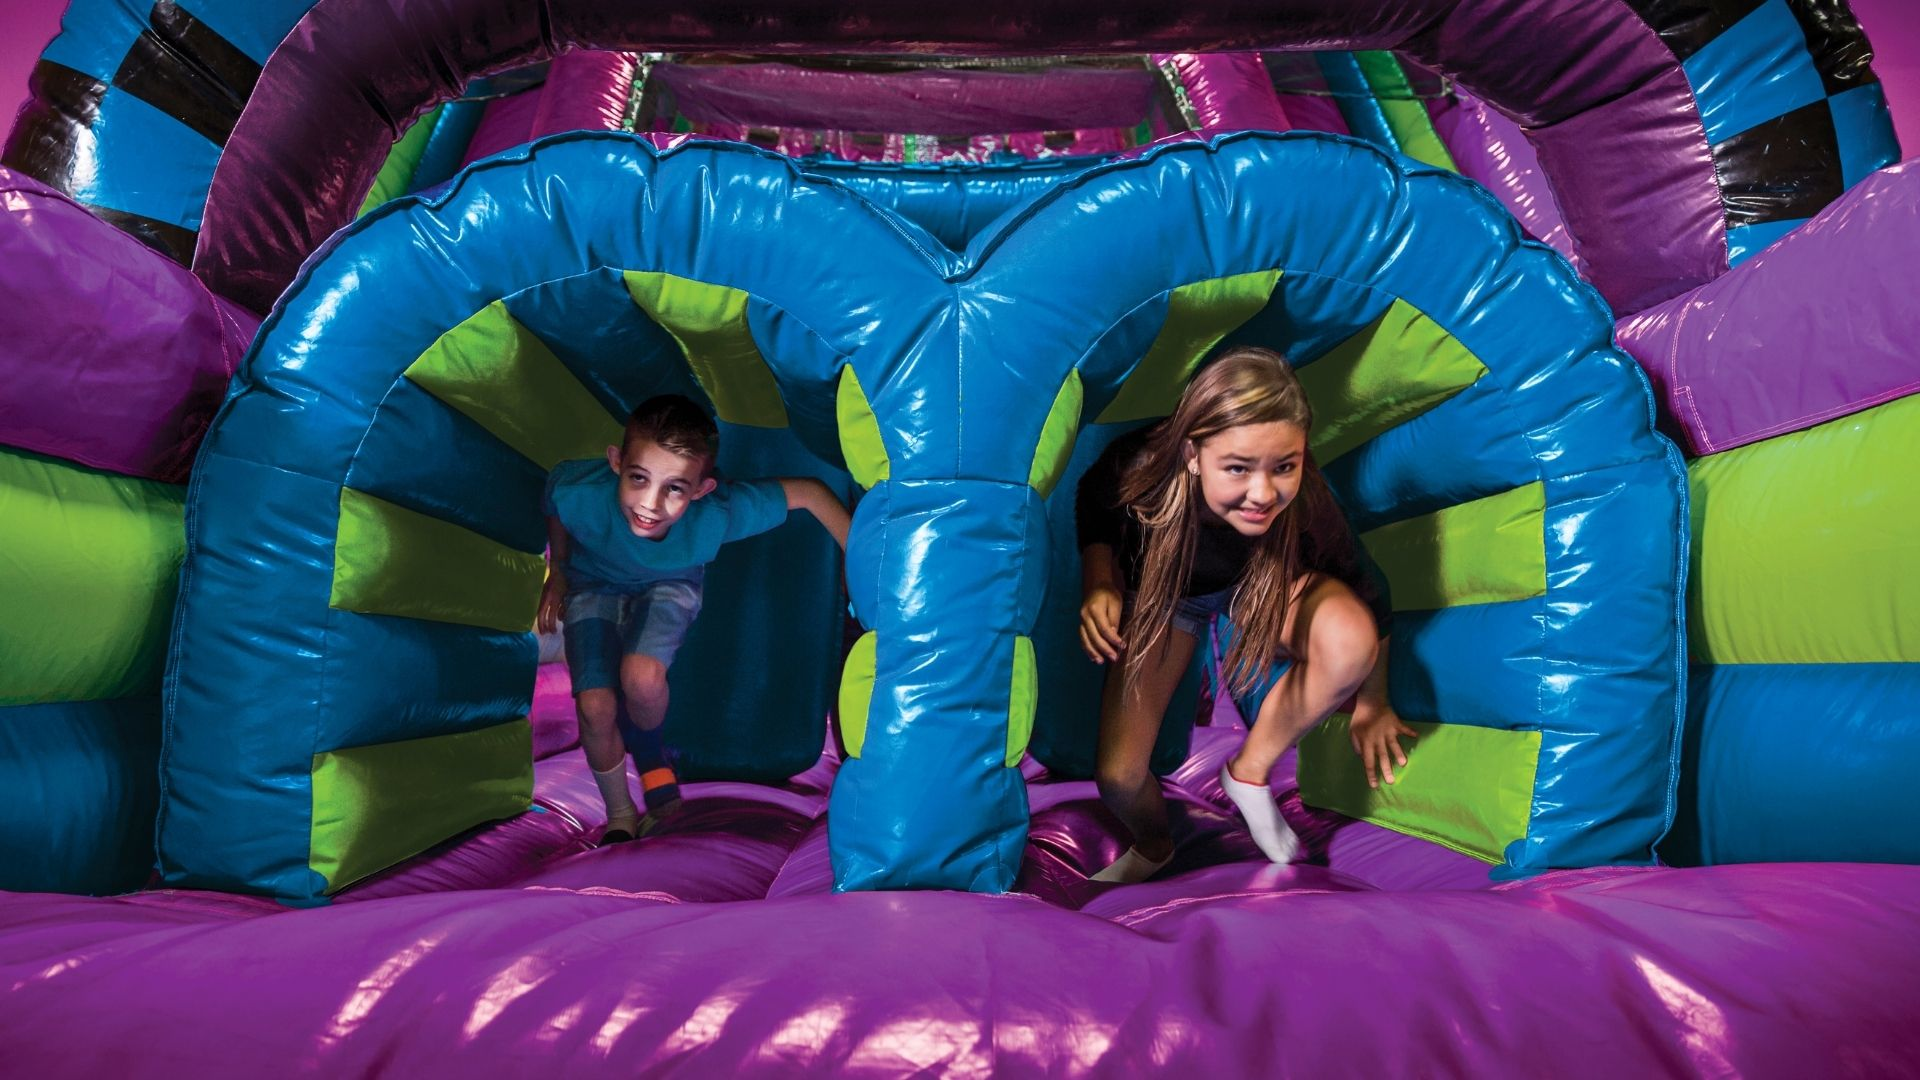 Two kids have fun in a bounce house at a kids birthday party.